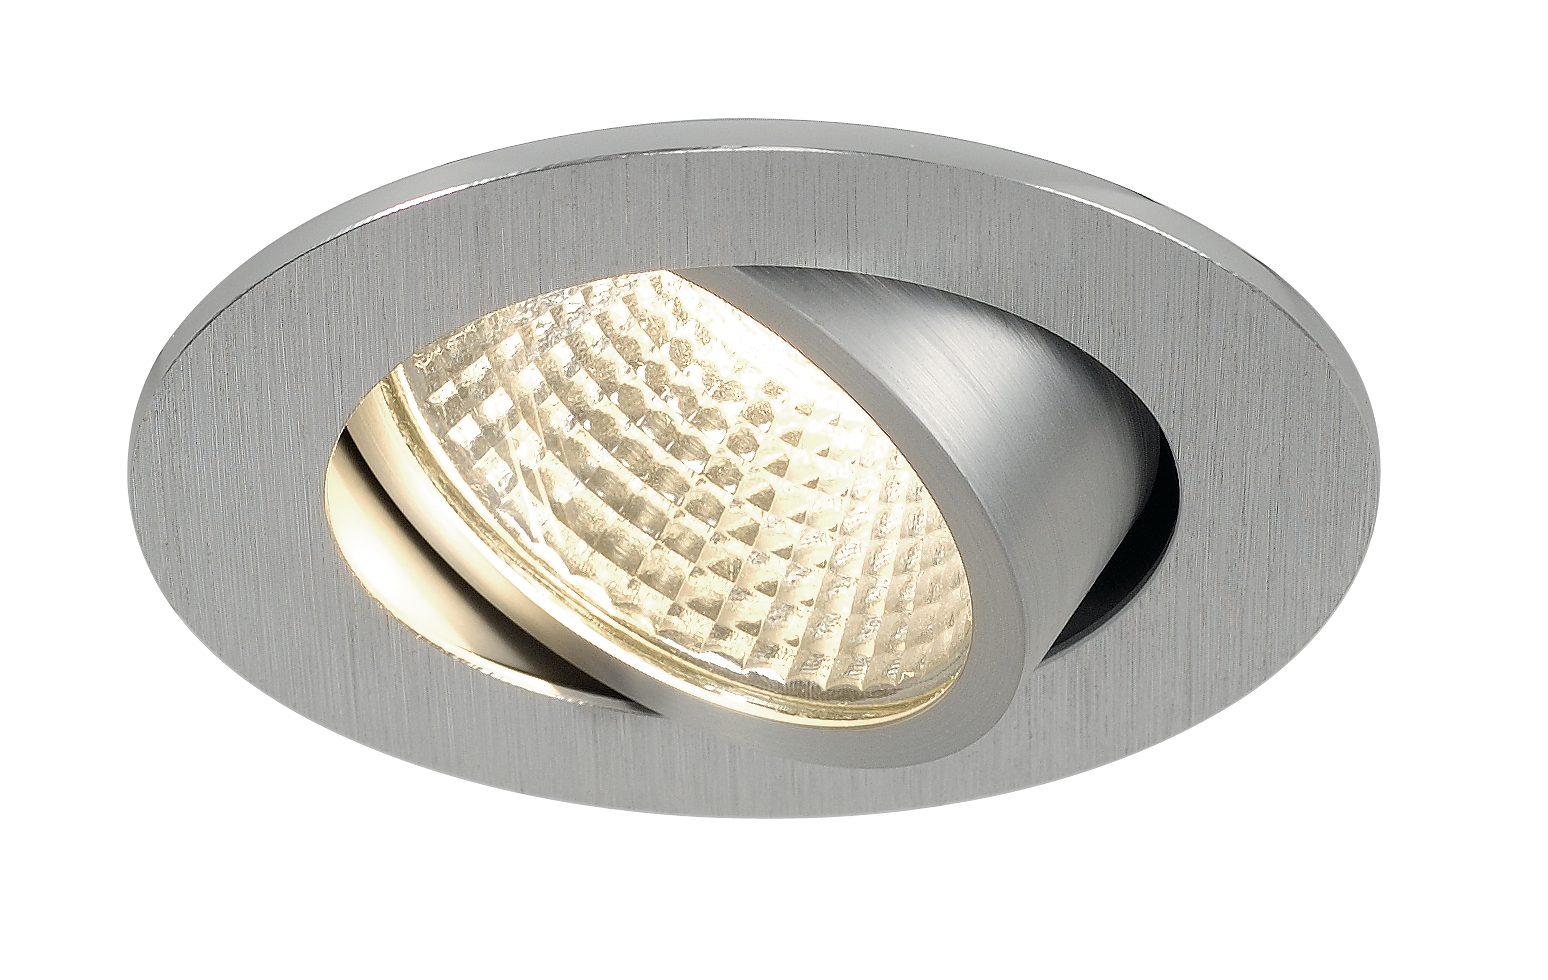 SLV New Tria 68 LED Downlight